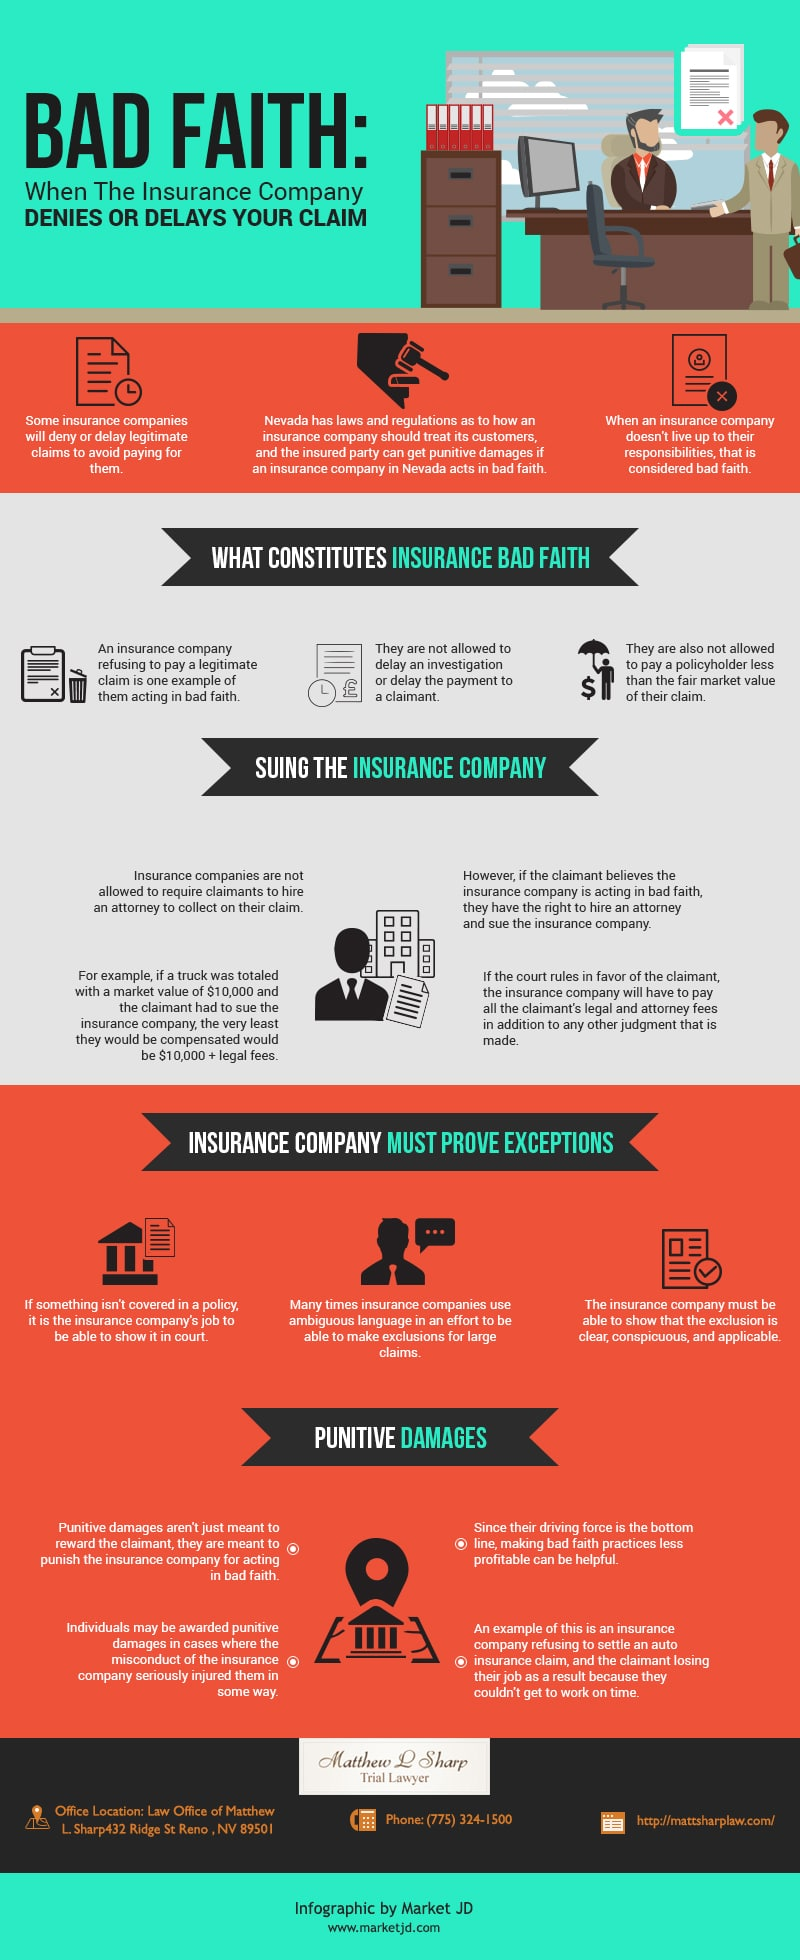 pics How to Sue Your Insurance Company